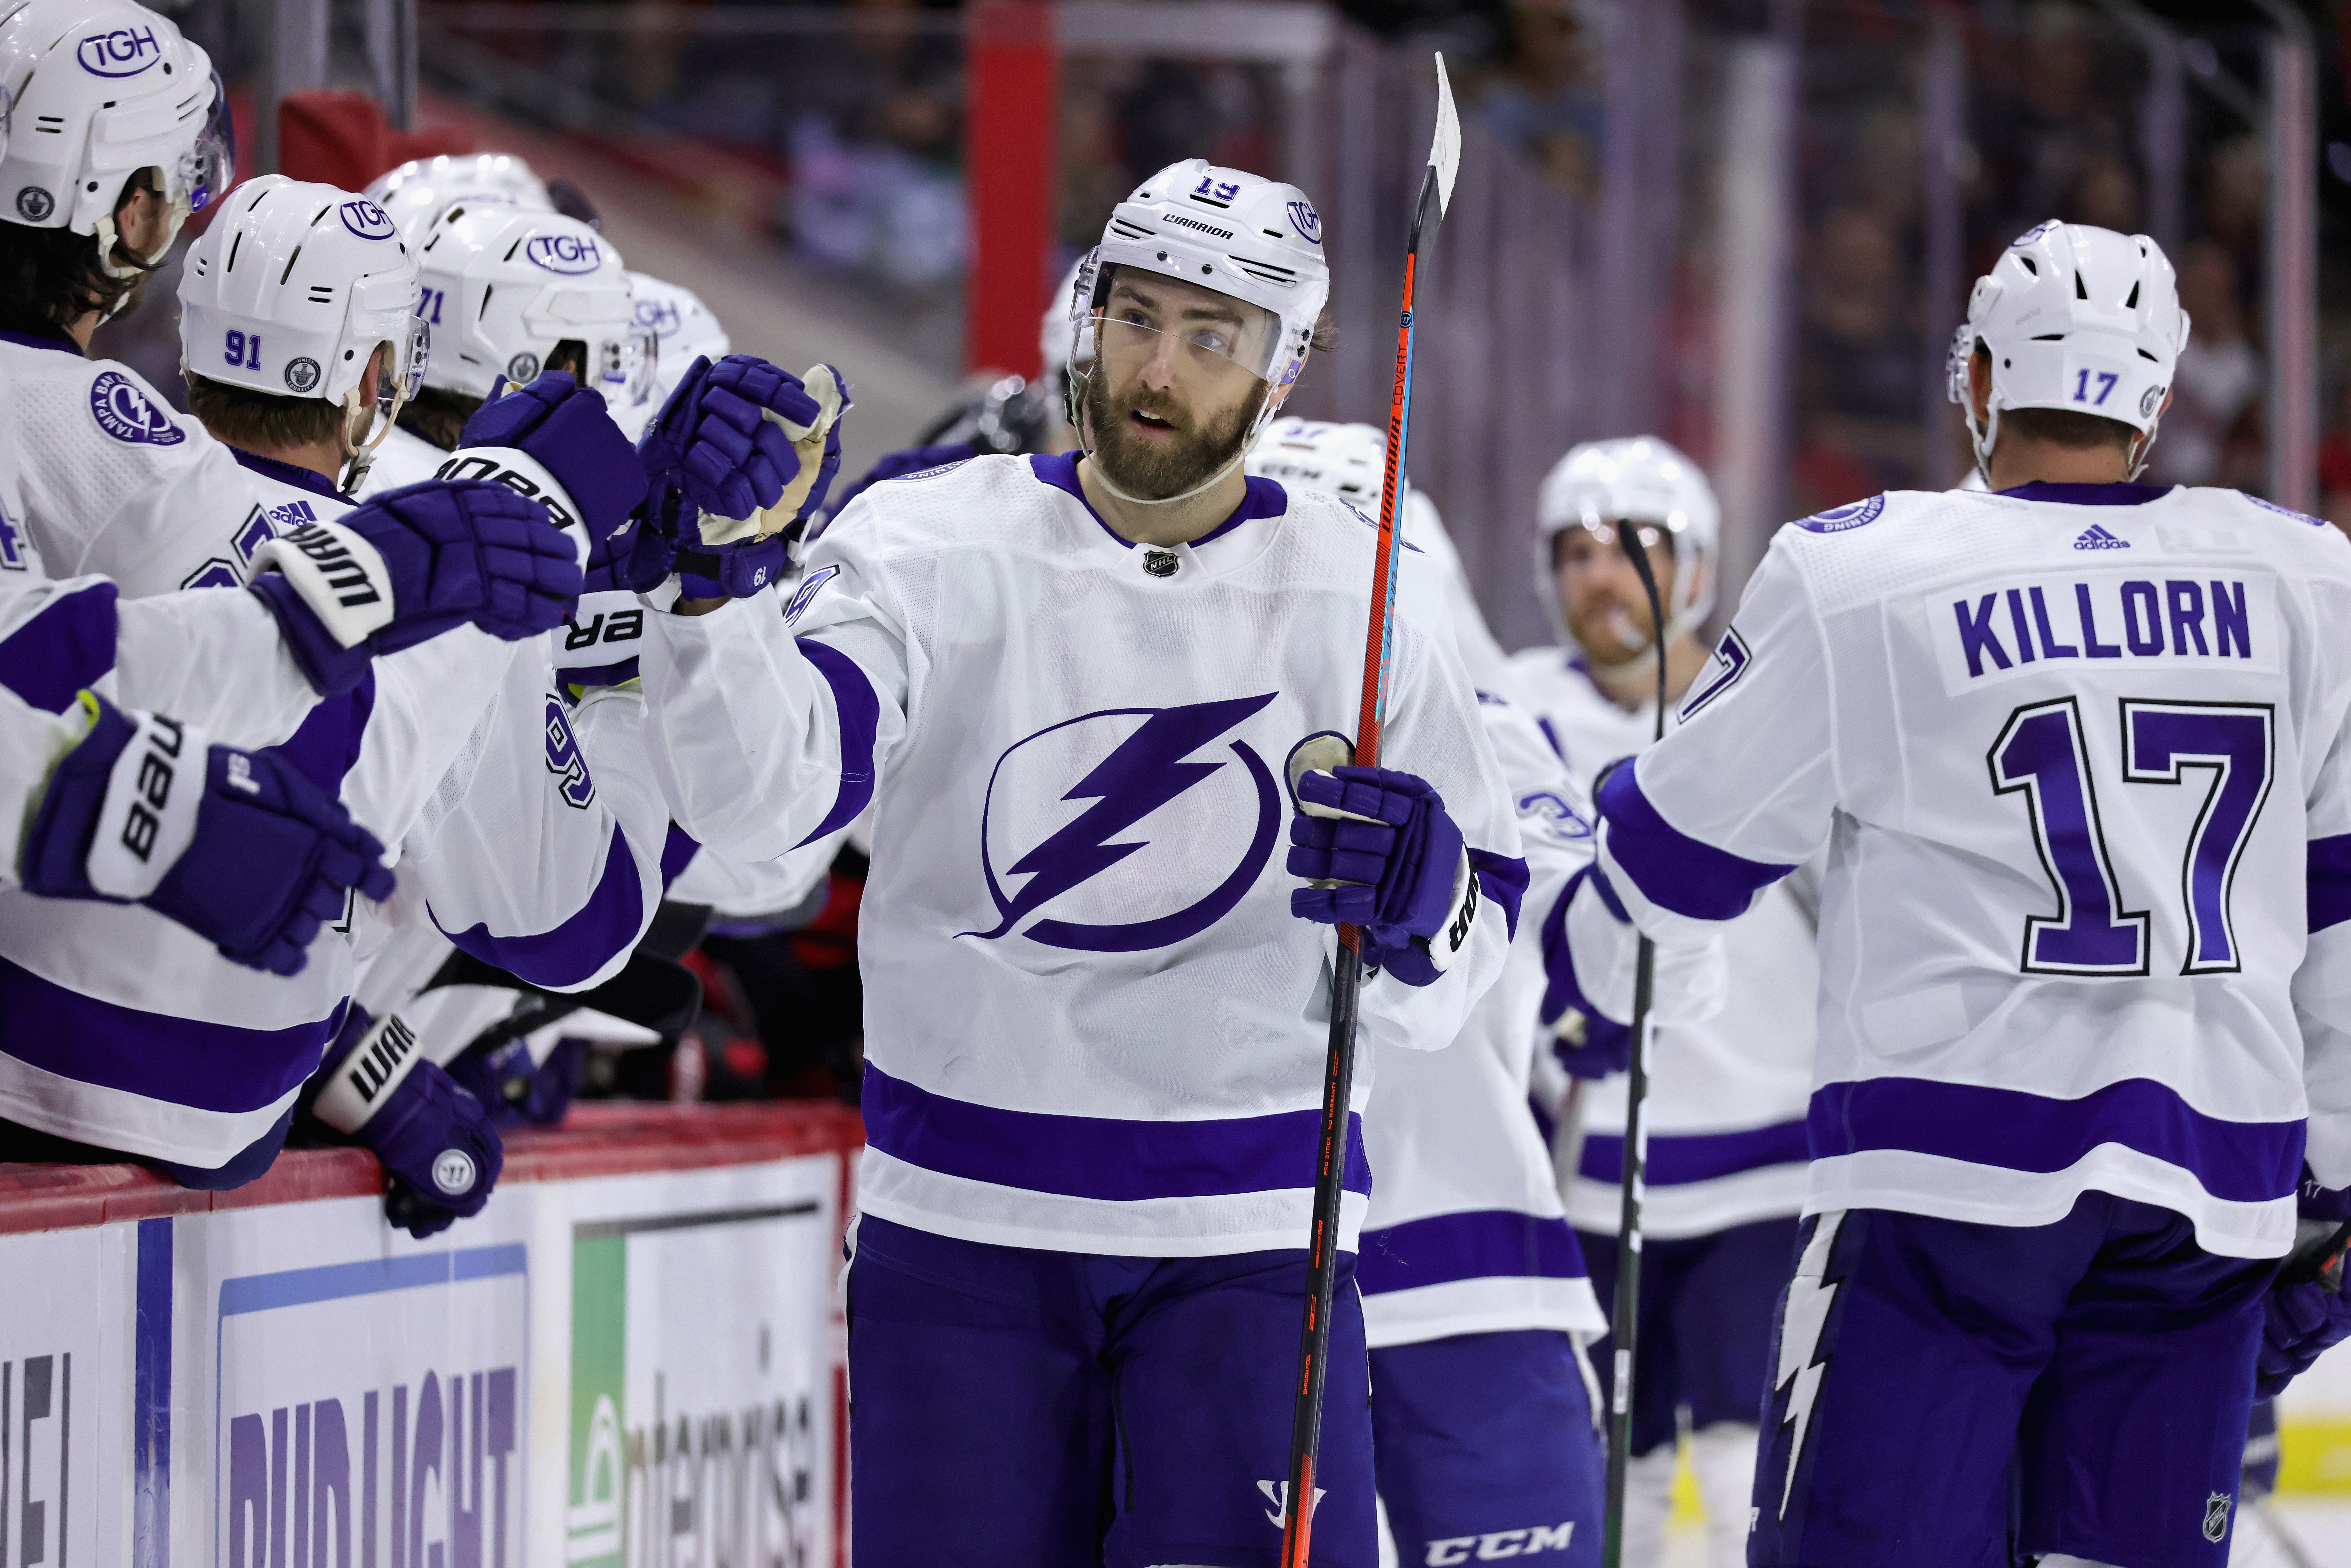 Barclay Goodrow #19 of the Tampa Bay Lightning skates to the bench after scoring a third period goal in Game One of the Second Round of the 2021 Stanley Cup Playoffs against the Carolina Hurricanes on May 30, 2021 at PNC Arena in Raleigh, North Carolina.